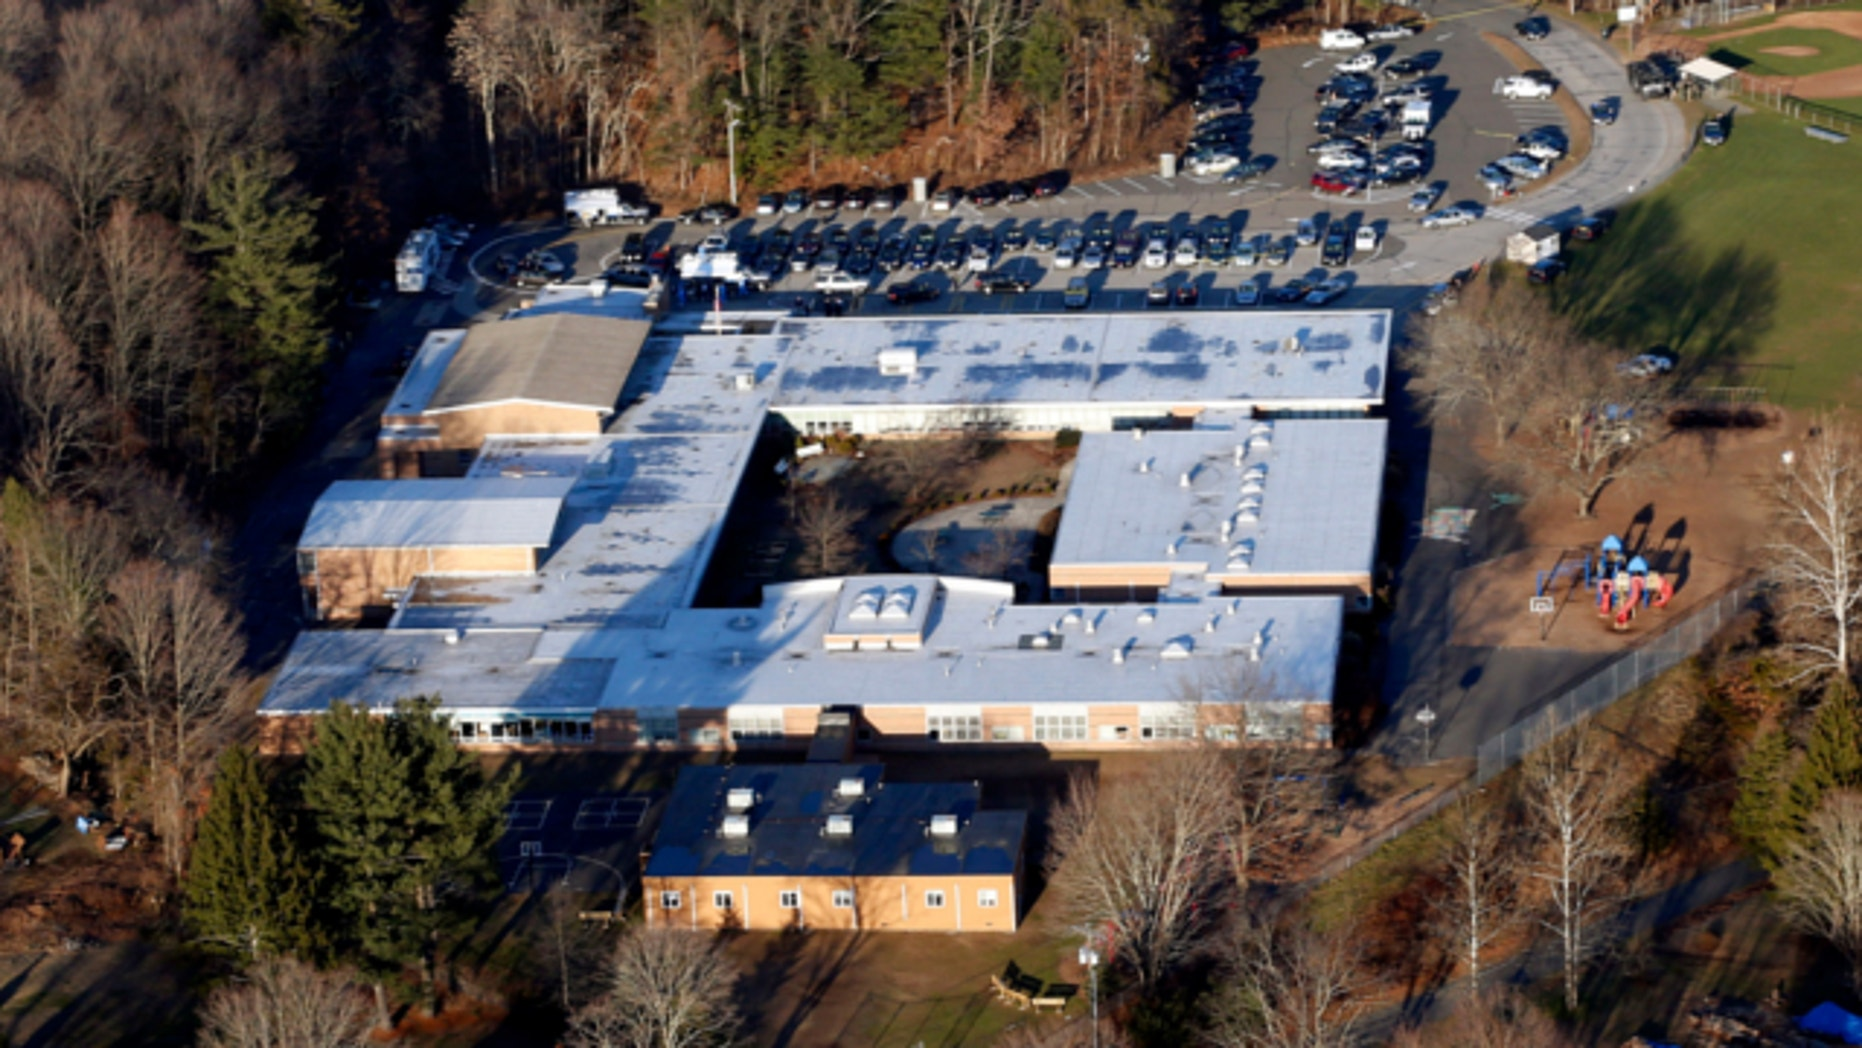 Dec. 14, 2012: This photo shows Sandy Hook Elementary School in Newtown, Conn., where a gunman shot 27 people dead, including 20 children.